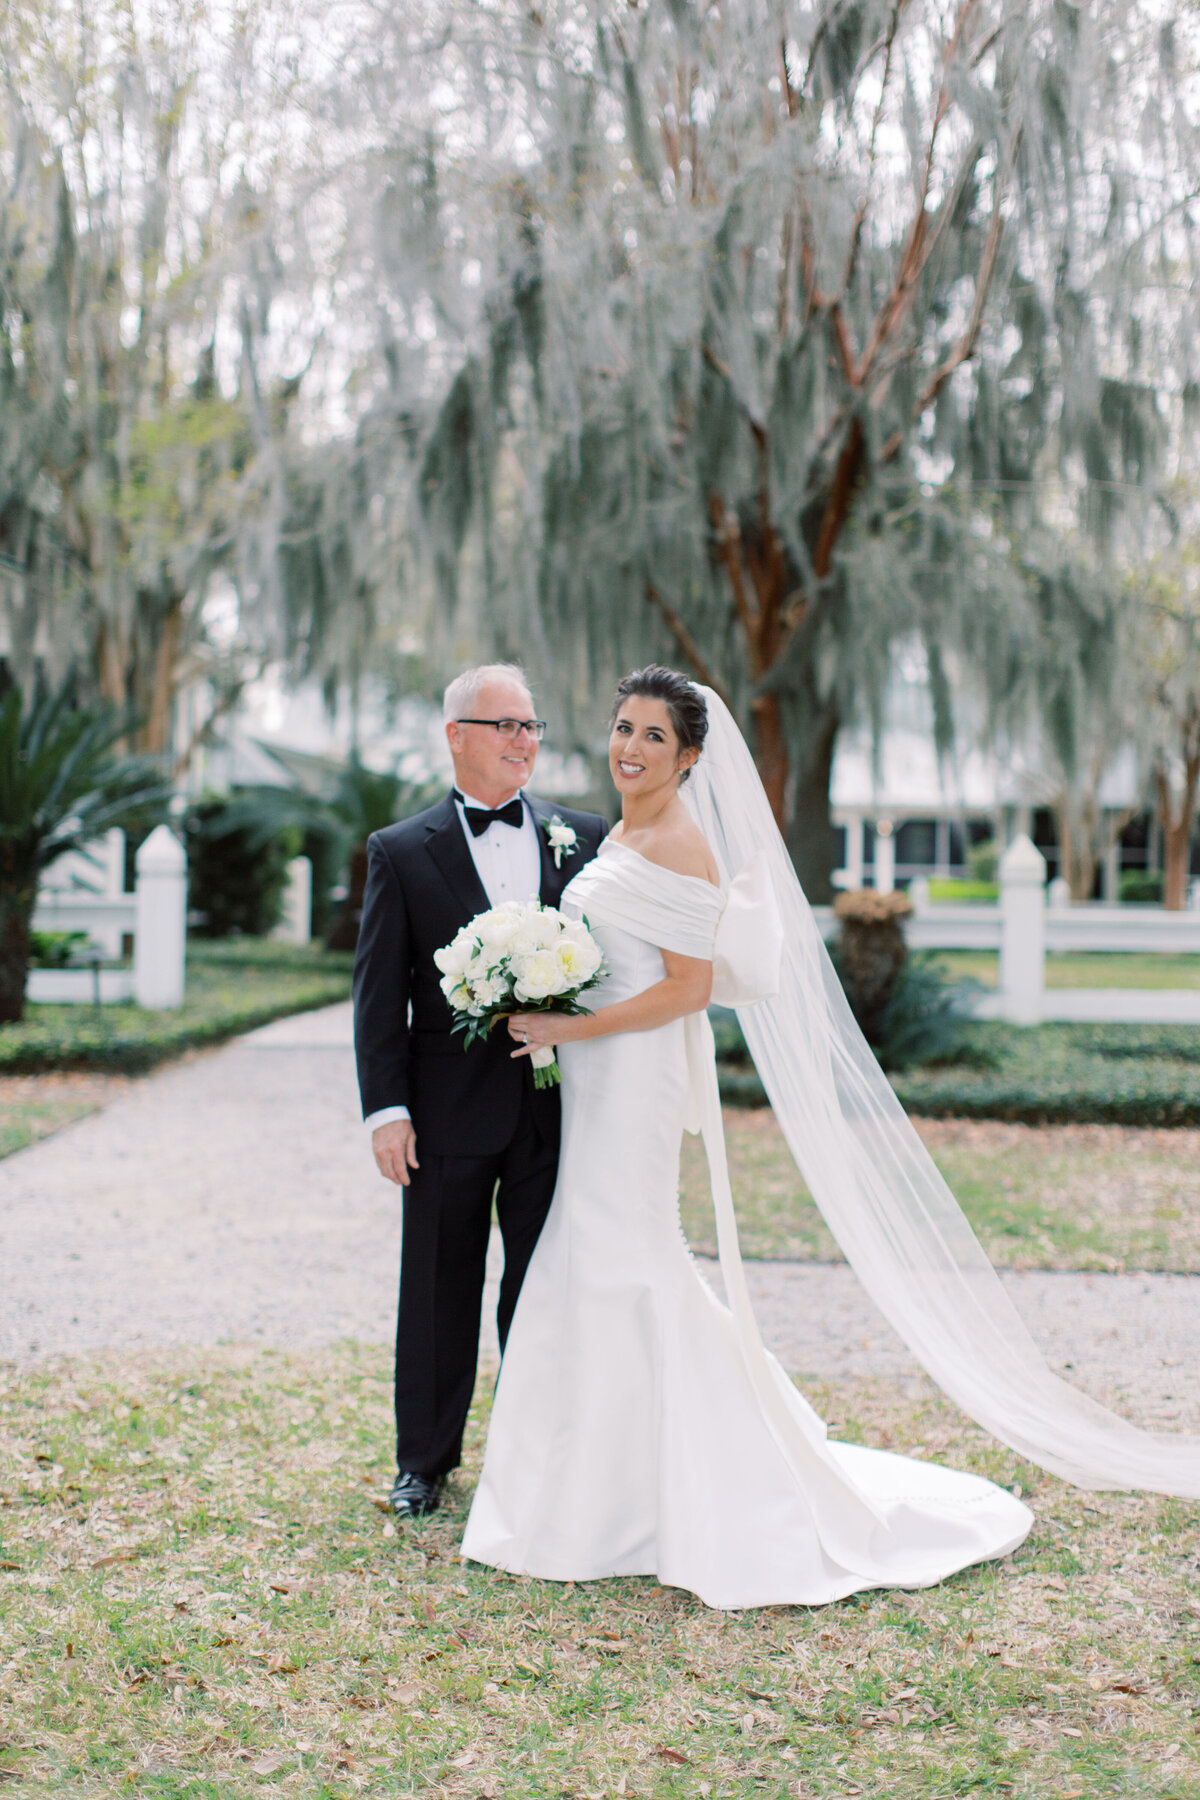 Powell_Oldfield_River_Club_Bluffton_South_Carolina_Beaufort_Savannah_Wedding_Jacksonville_Florida_Devon_Donnahoo_Photography_0135